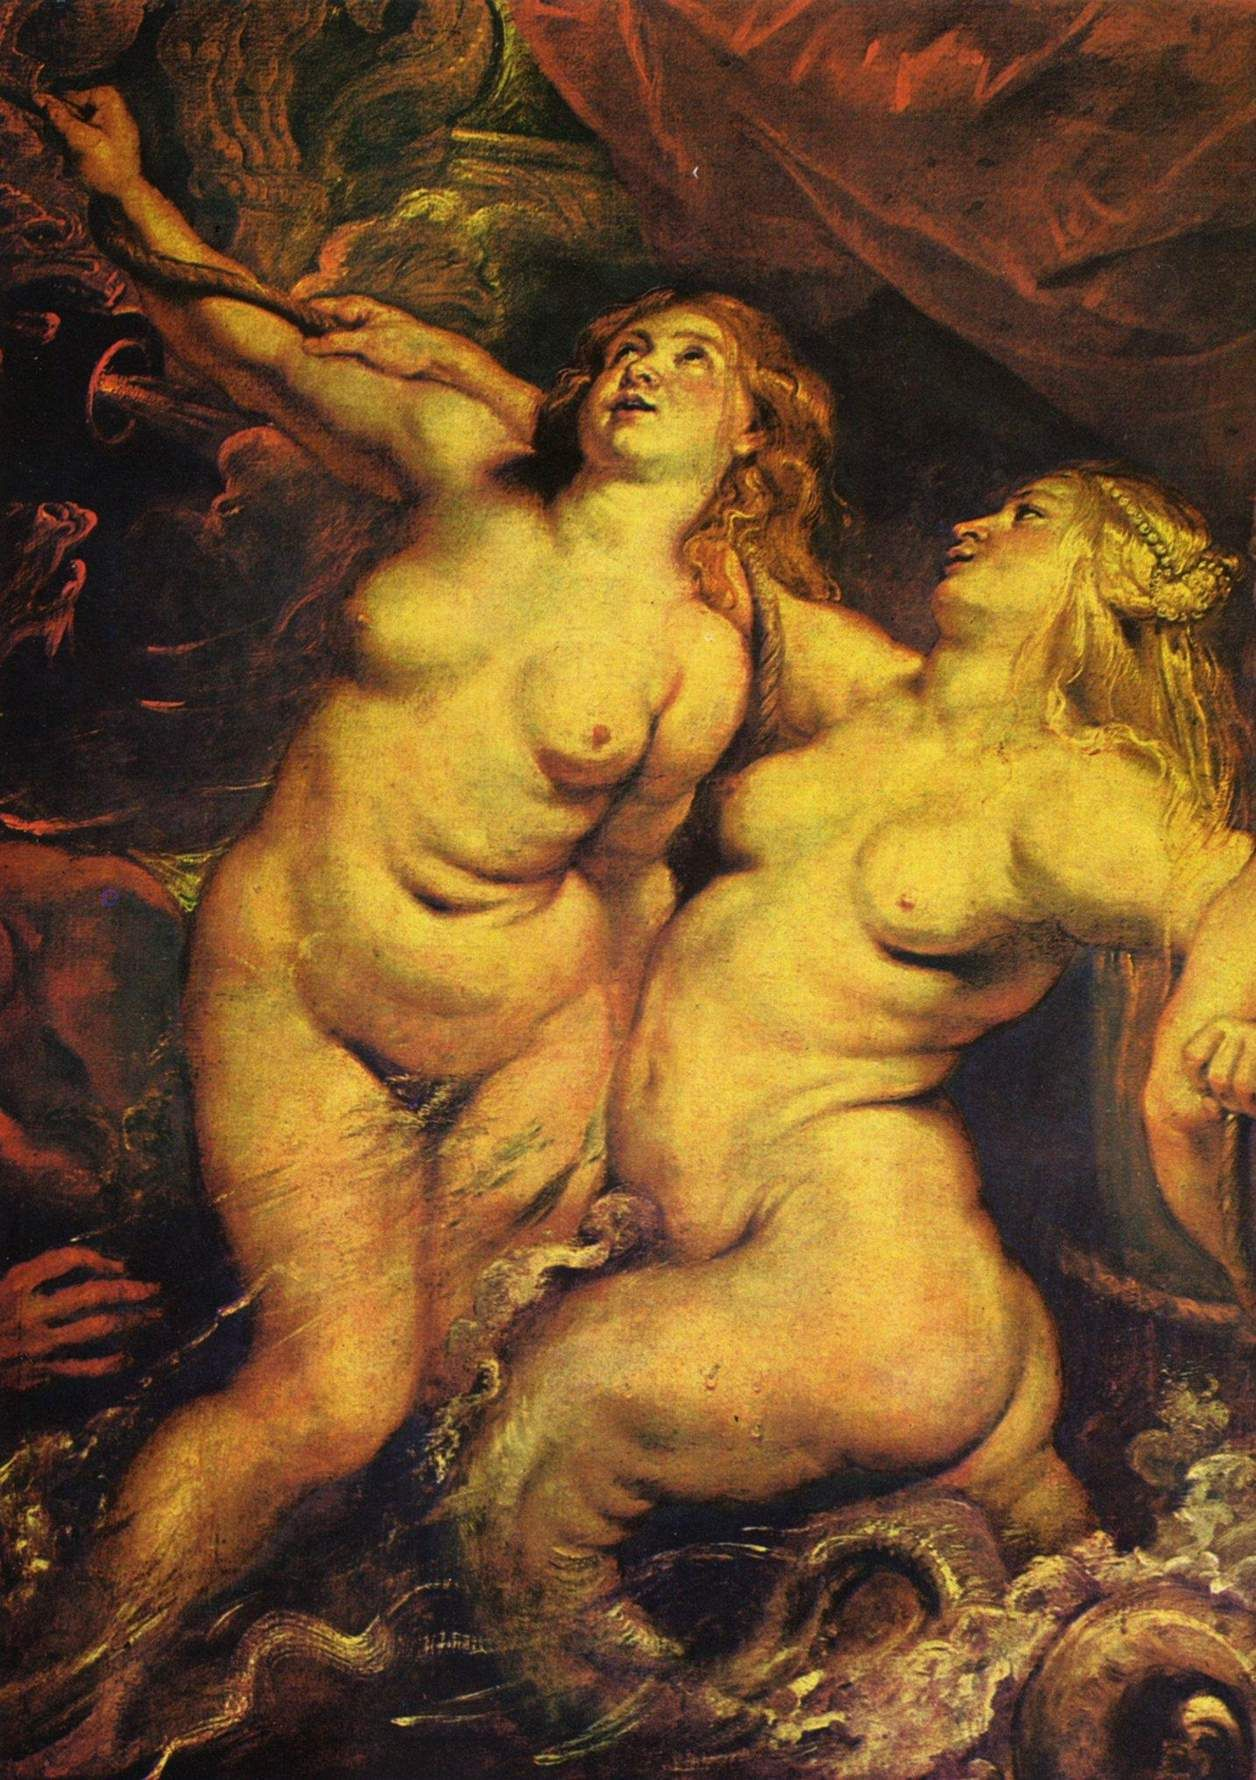 naked of Renaissance women paintings